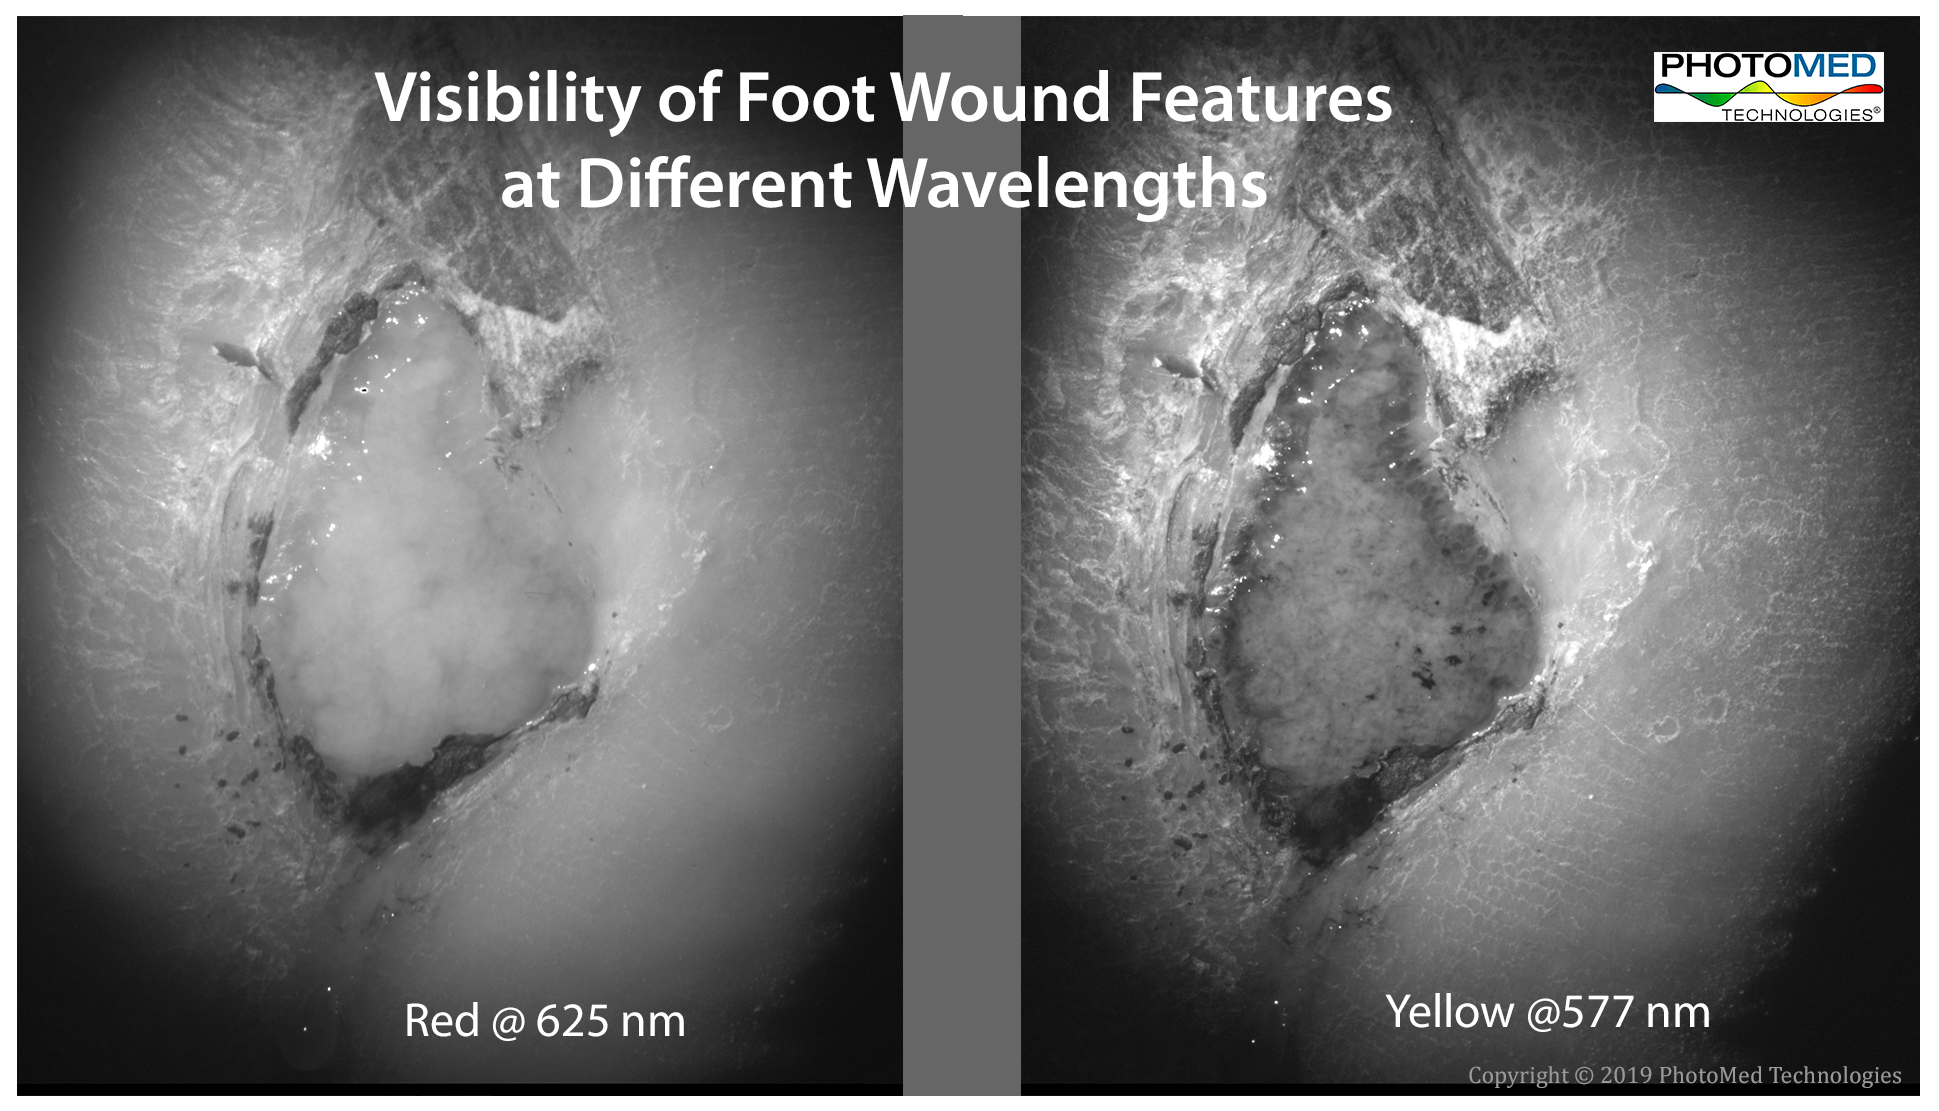 Wound Feature Visibility 2019-05-28.png